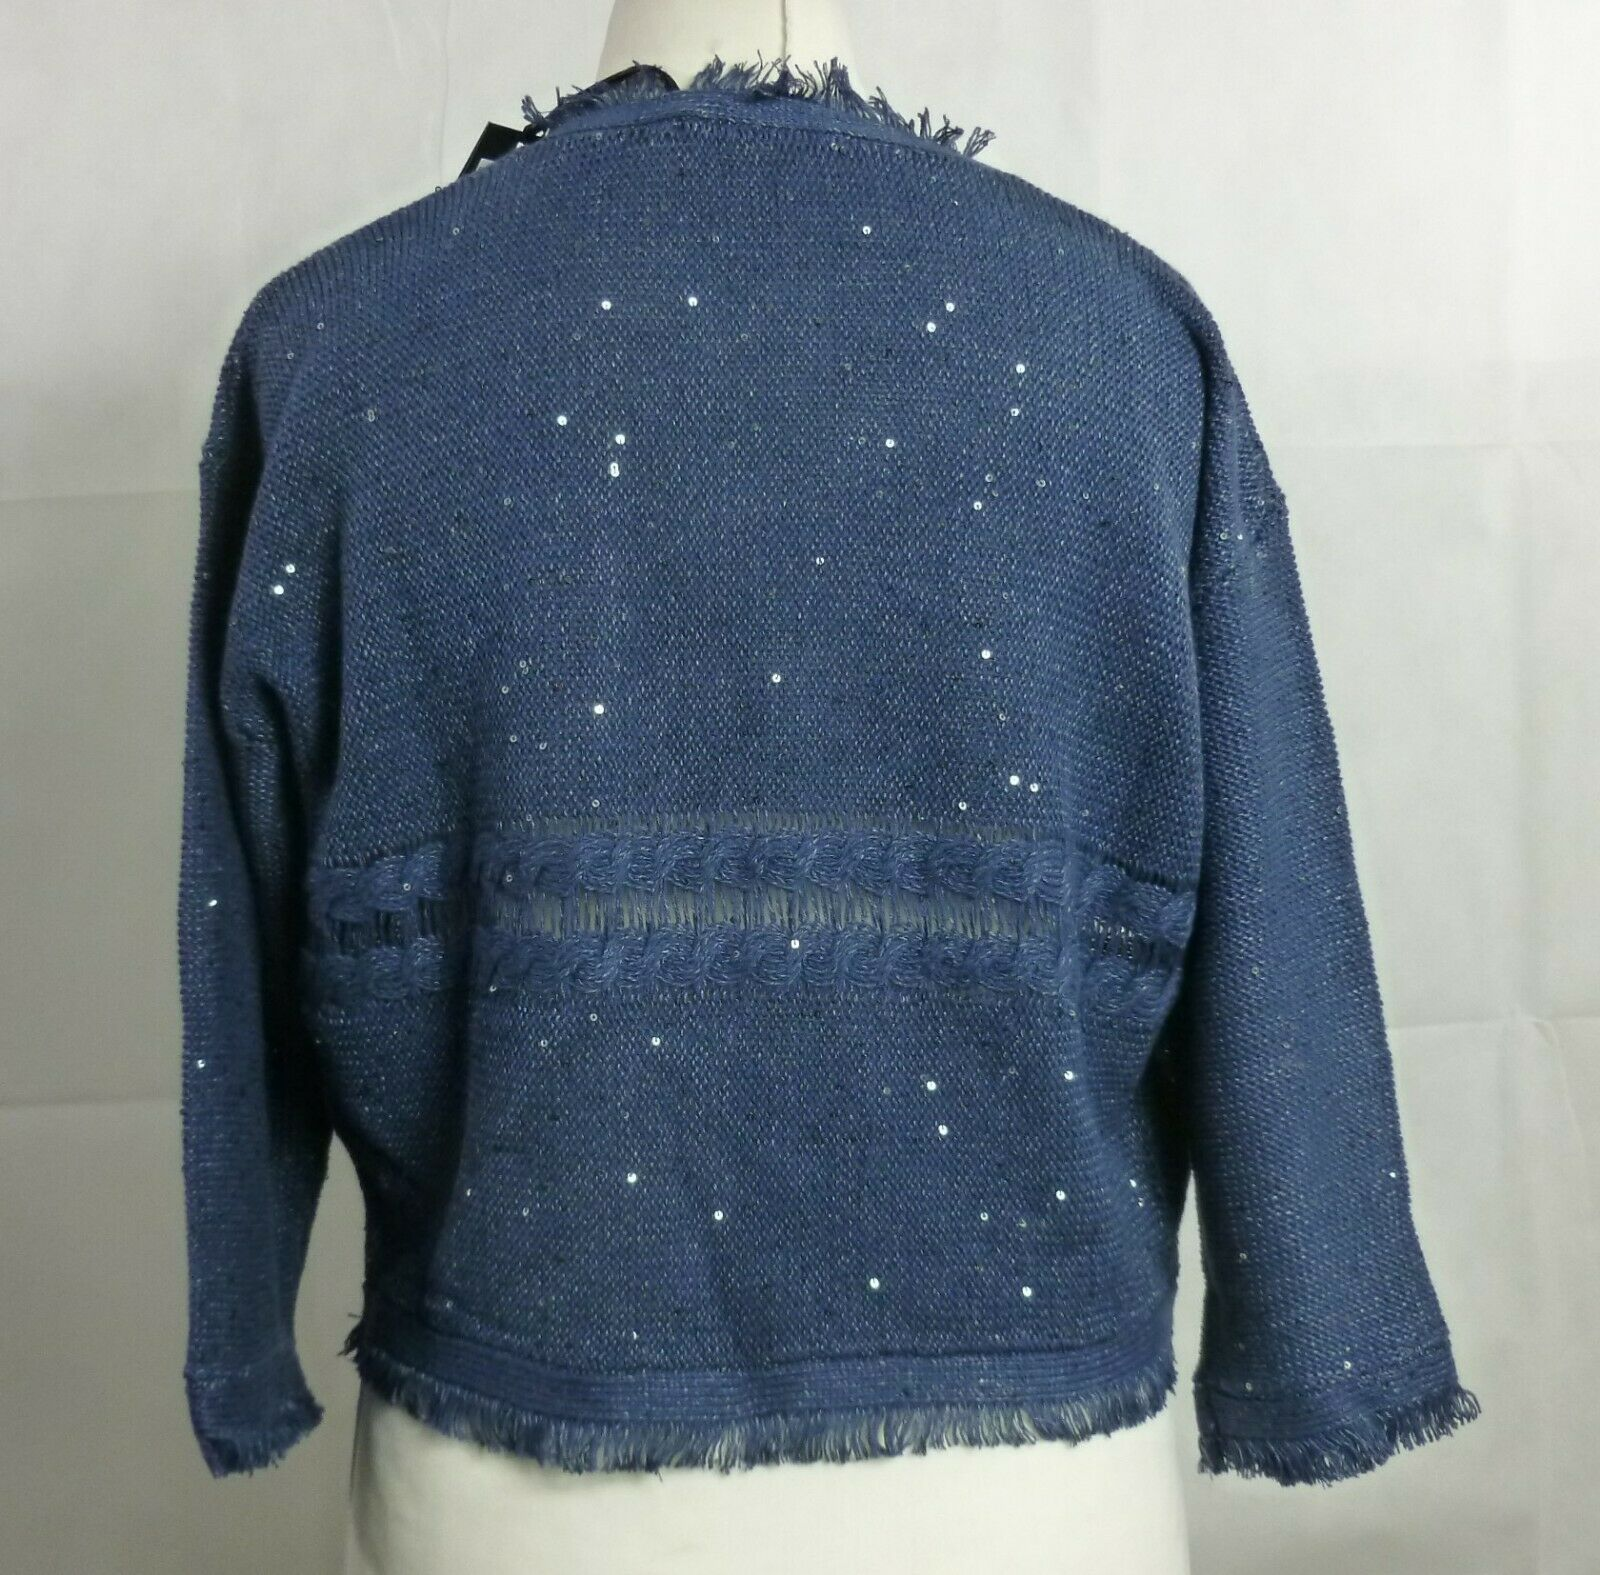 Luisa Cerano bluee Sequin Cardigan Size Size Size 38 Ladies UK Size 12 RRP  Box45 74 N d4788f